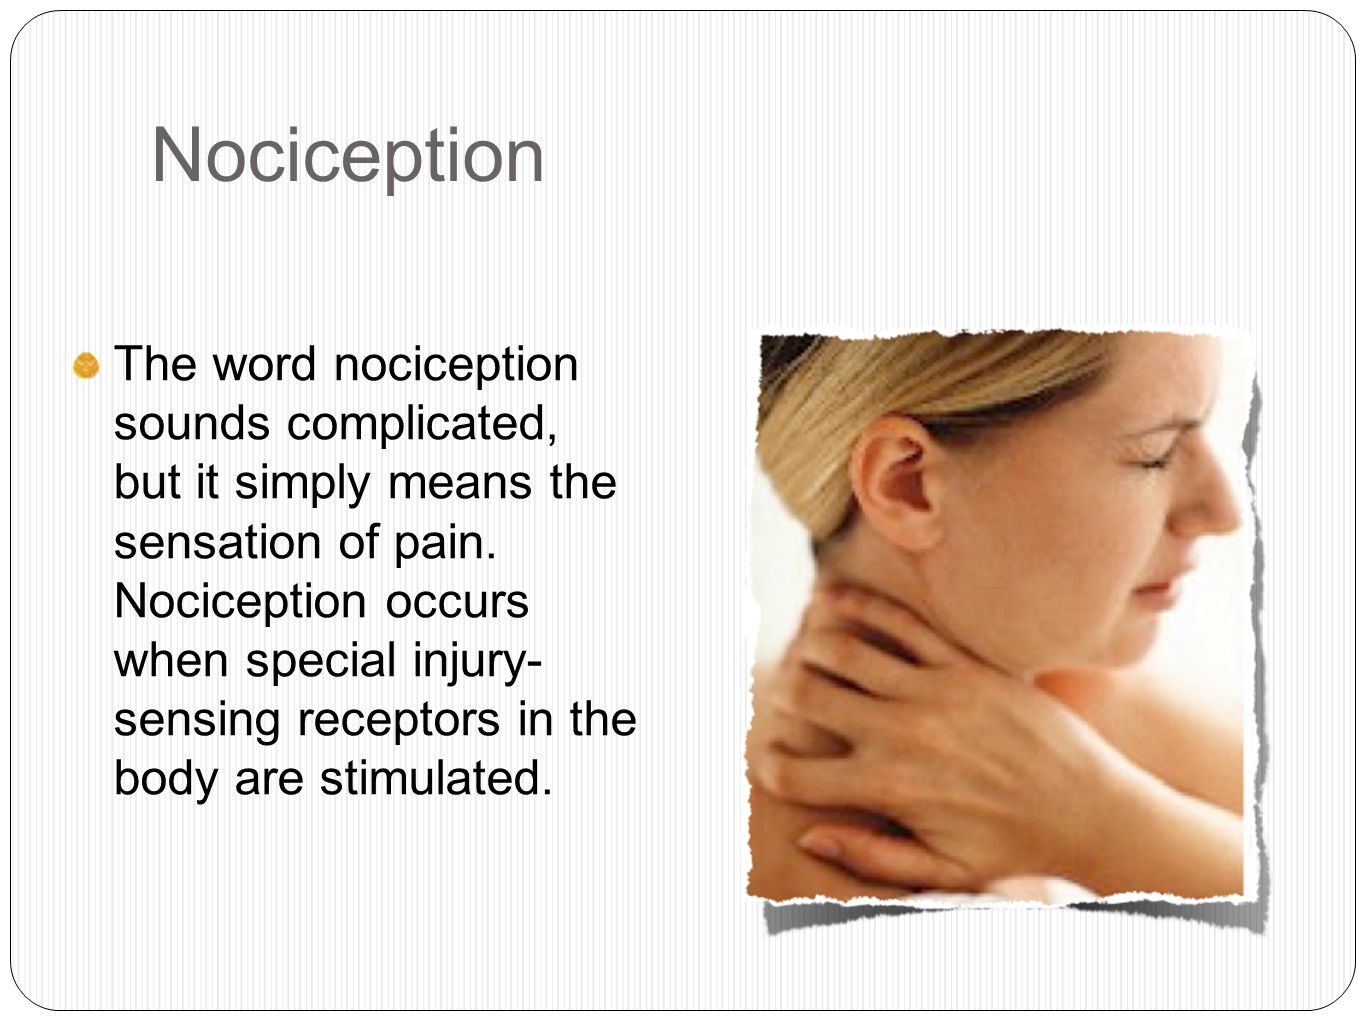 Nociception The word nociception sounds complicated, but it simply means the sensation of pain.